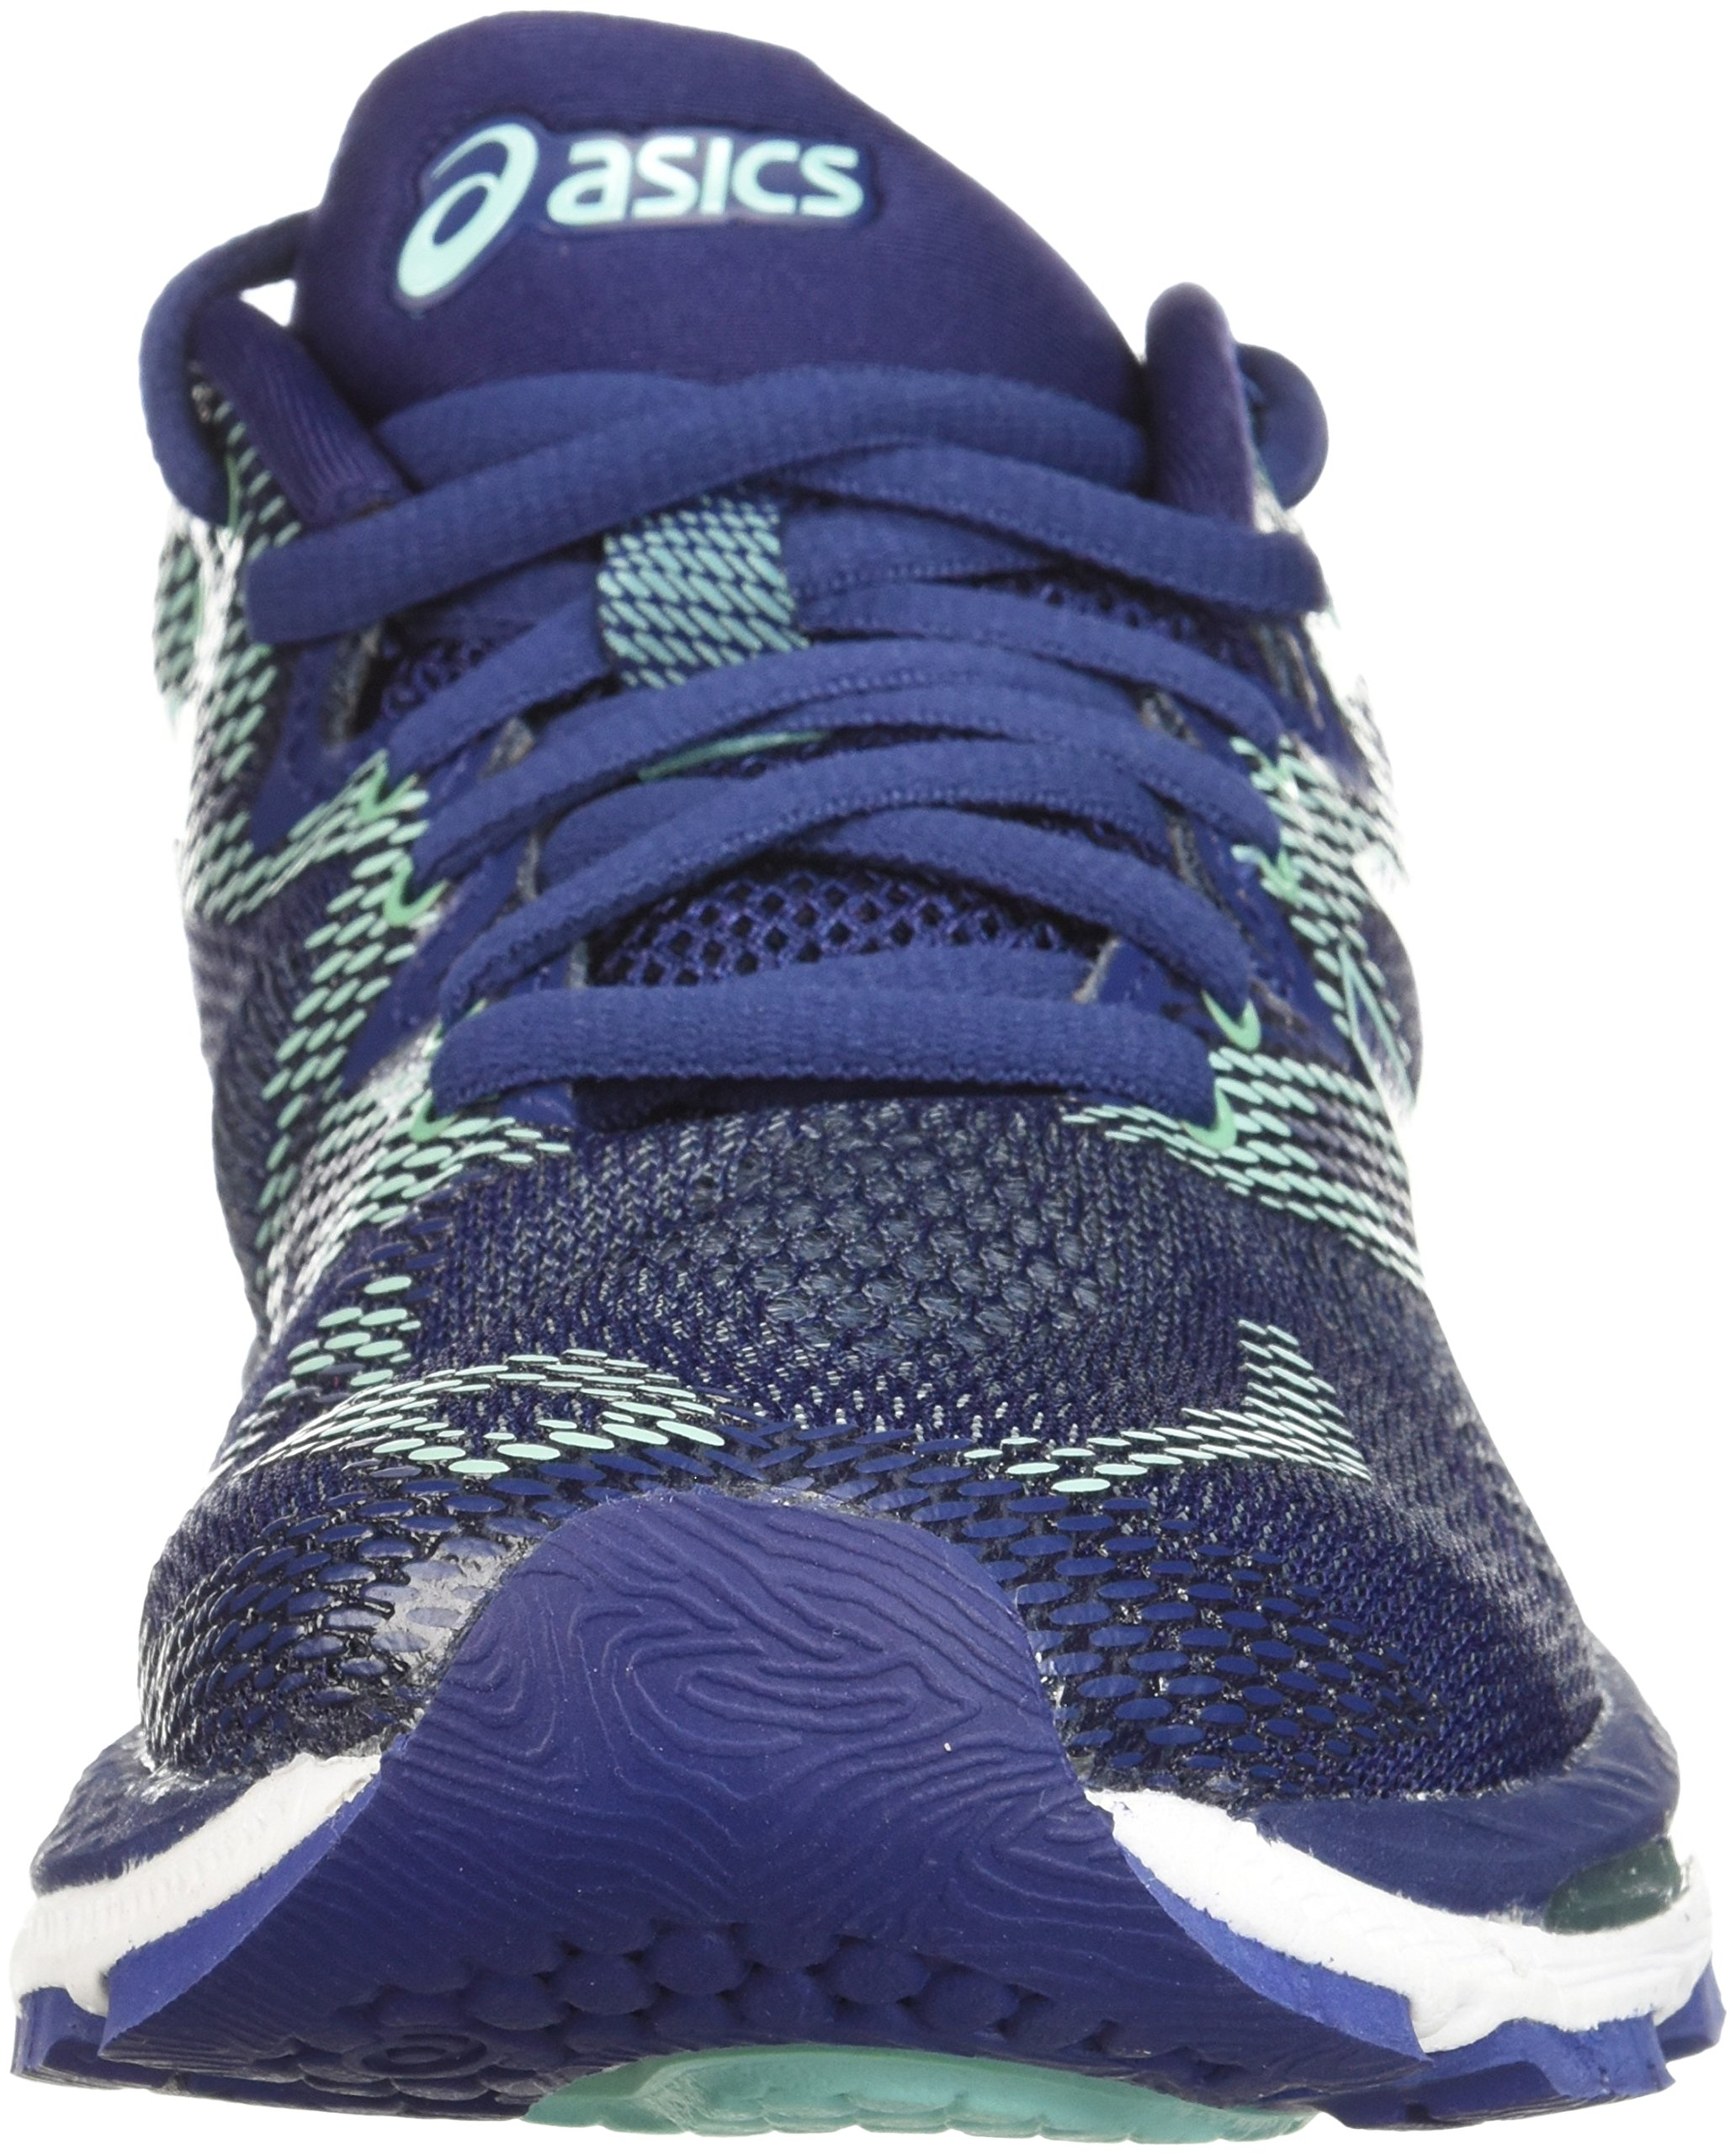 ASICS Women's Gel-Nimbus 20 Running Shoe, indigo blue/indigo blue/opal green, 12 D US by ASICS (Image #4)